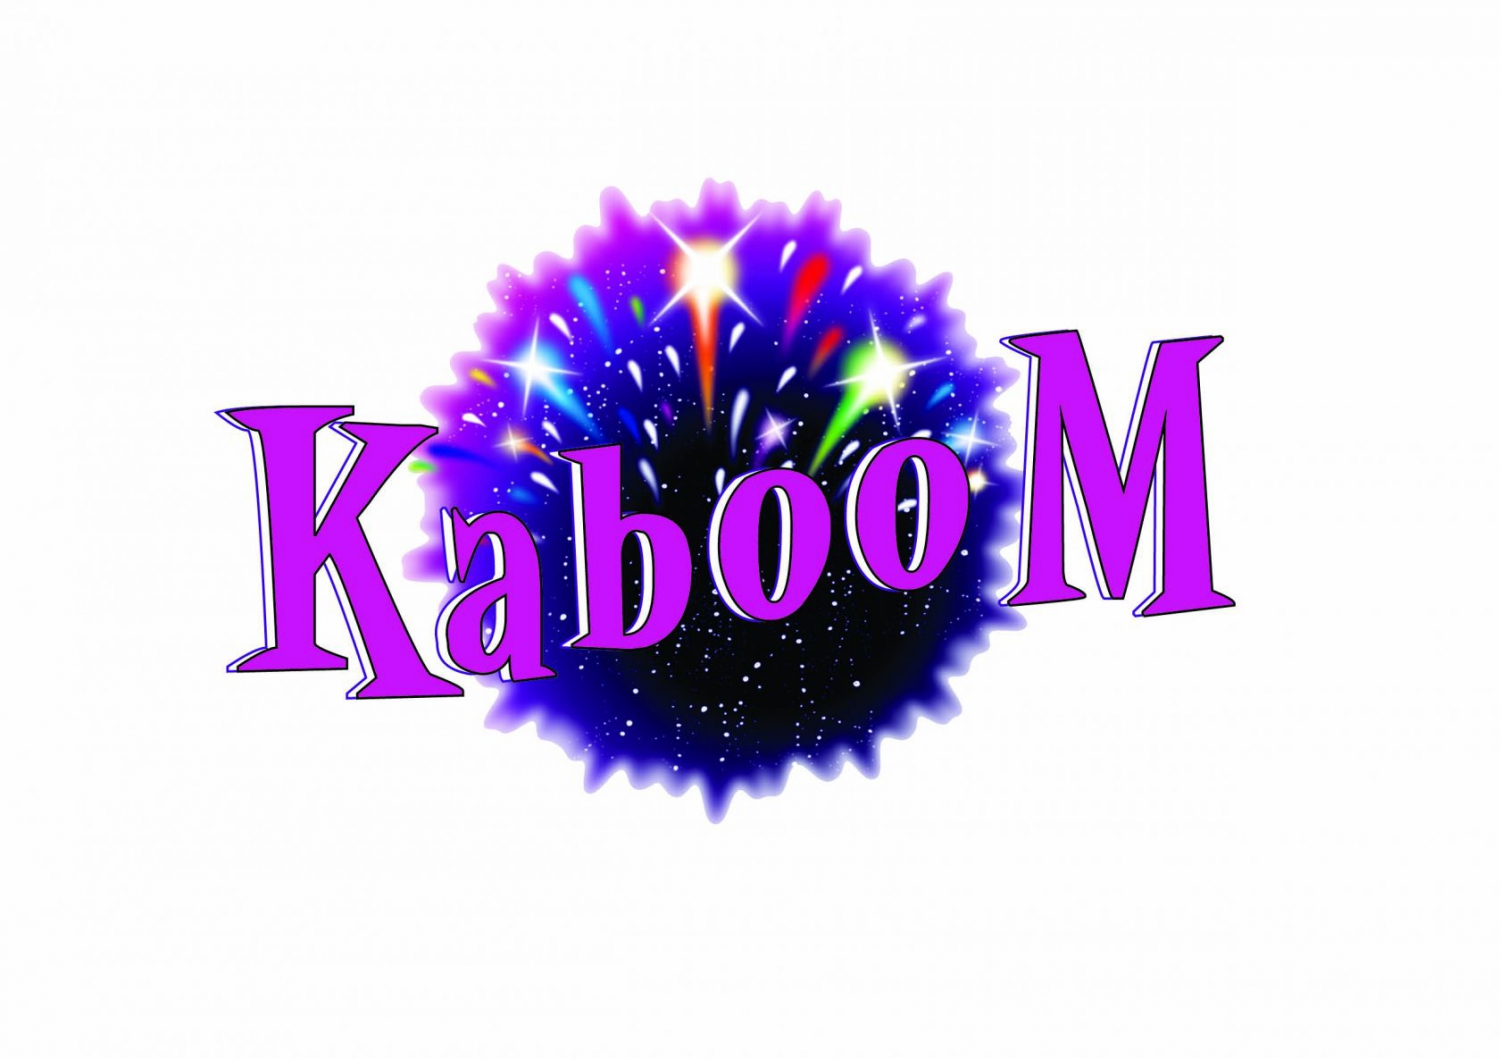 Kaboom on November 4th